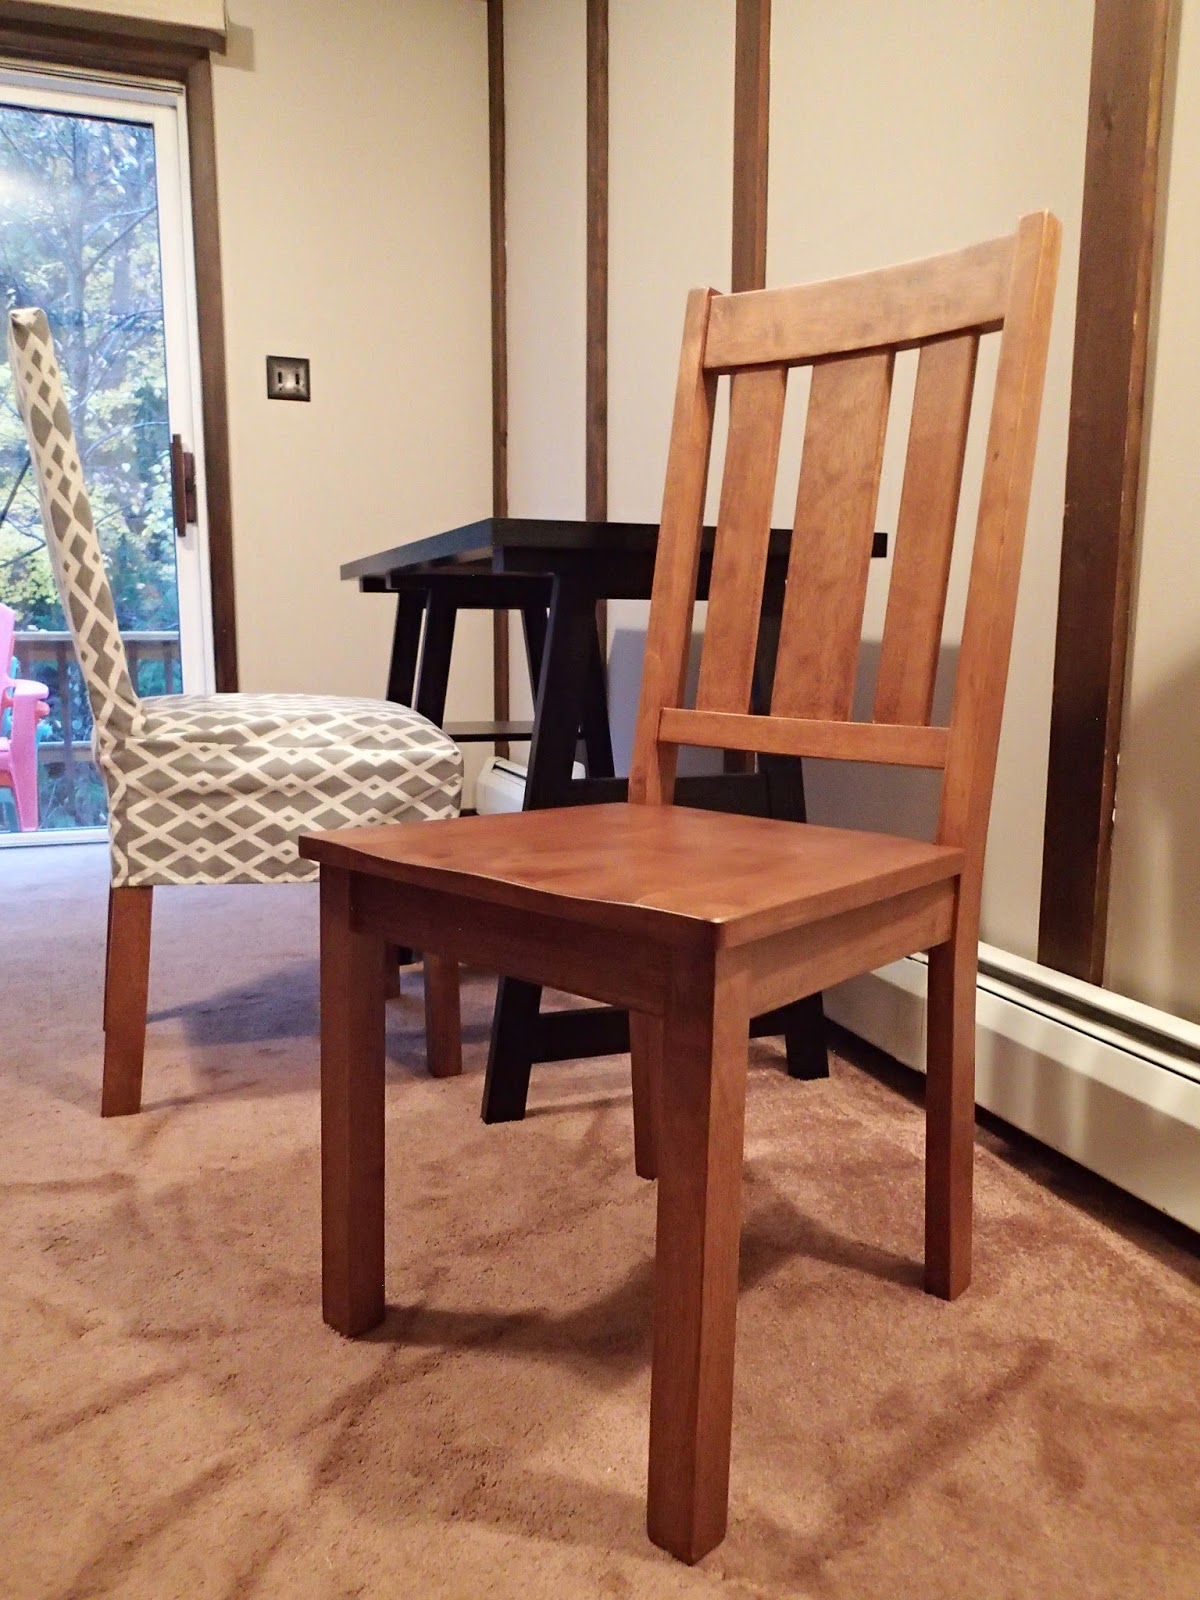 How To Tie A Slip Knot Chair Sash Coffee Shop Chairs My Little Girl 39s Dress And More Diy Make